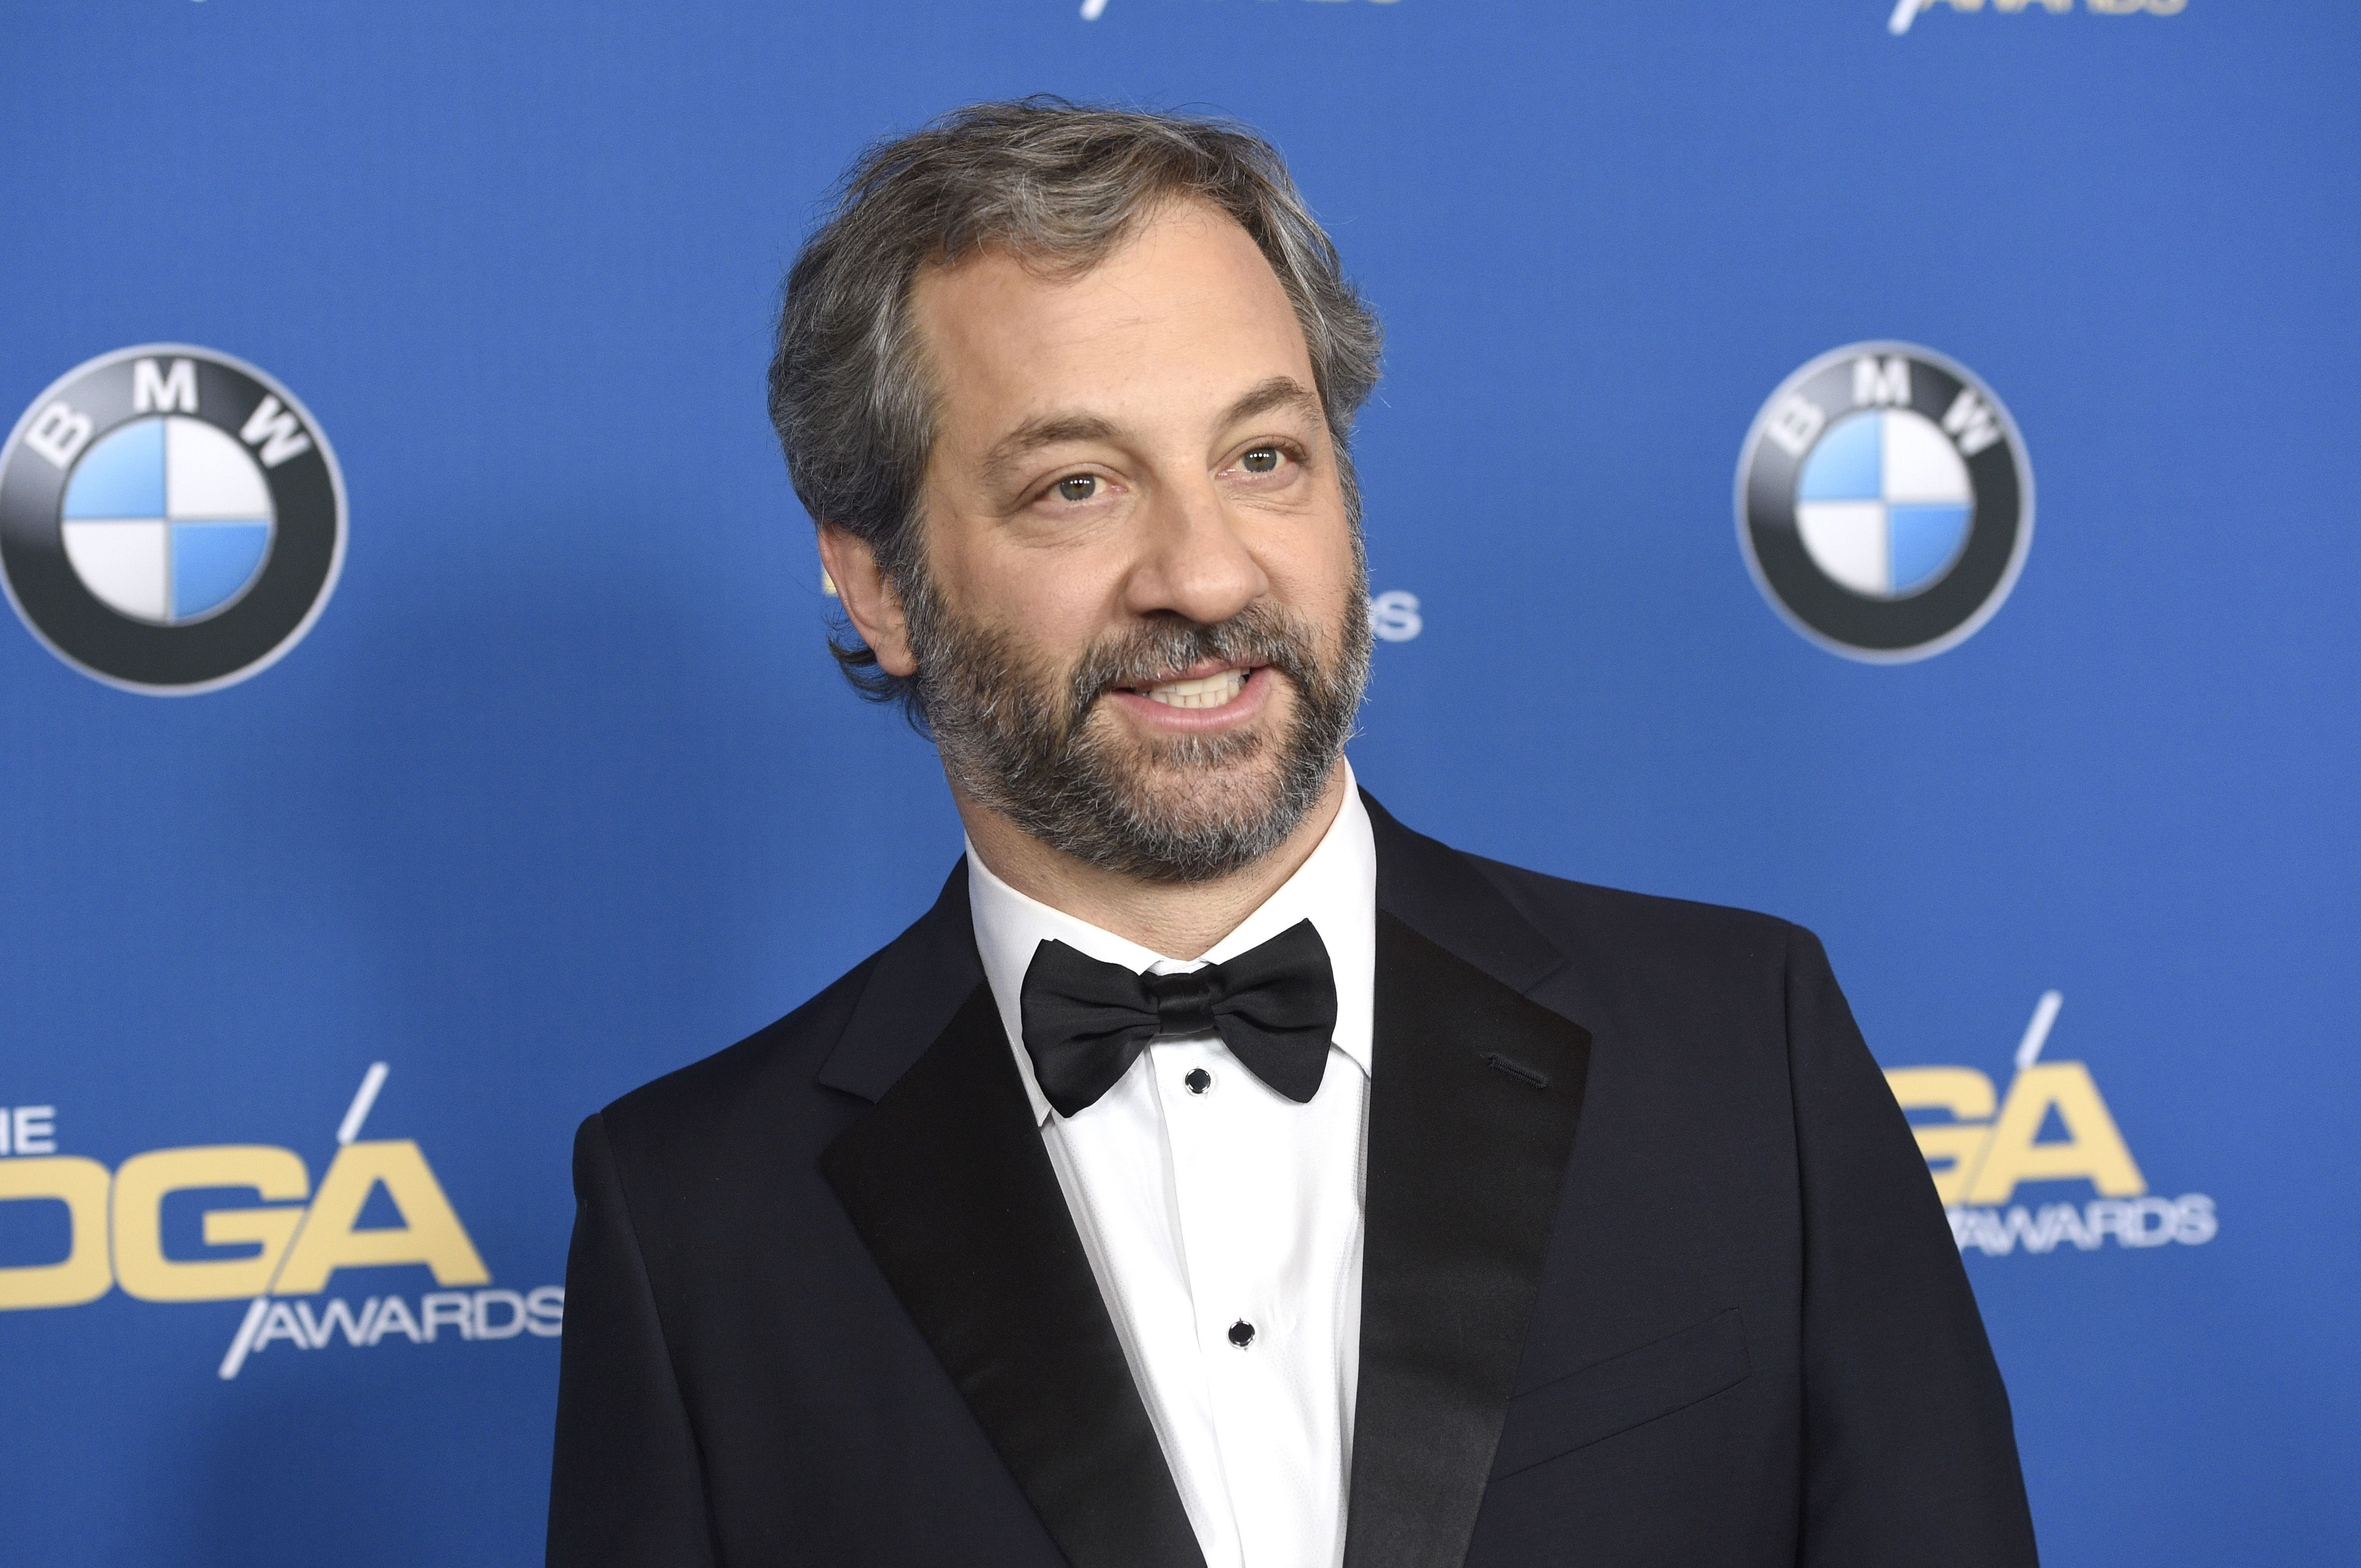 Judd Apatow arrives at the 70th annual Directors Guild of America Awards at The Beverly Hilton hotel, in Beverly Hills, Calif70th Annual DGA Awards - Arrivals, Beverly Hills, USA - 03 Feb 2018